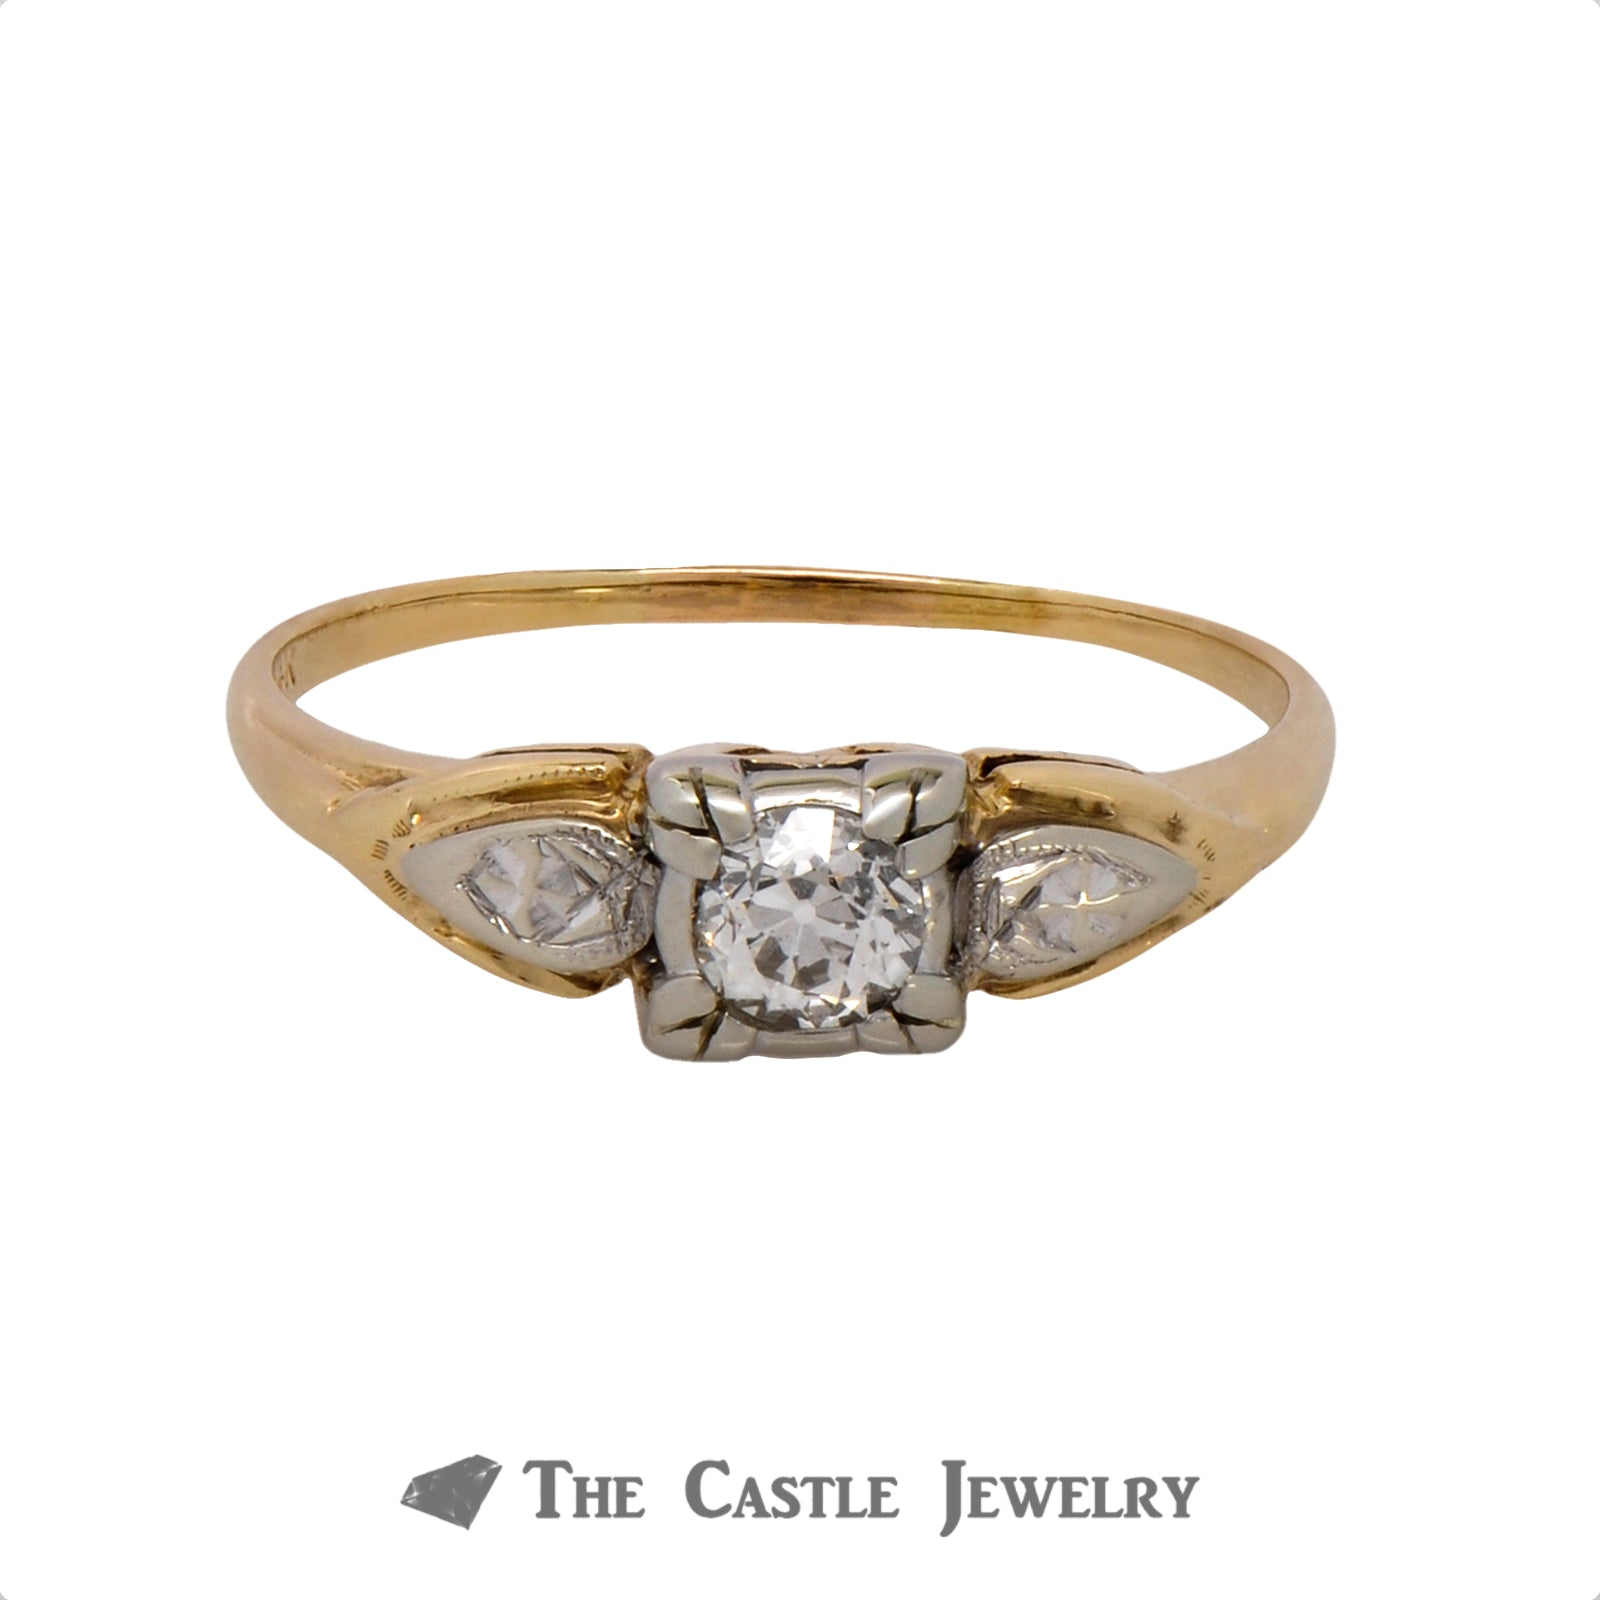 .30ct Old European Cut Diamond Solitaire Engagement Ring in 14k Two-Tone Gold